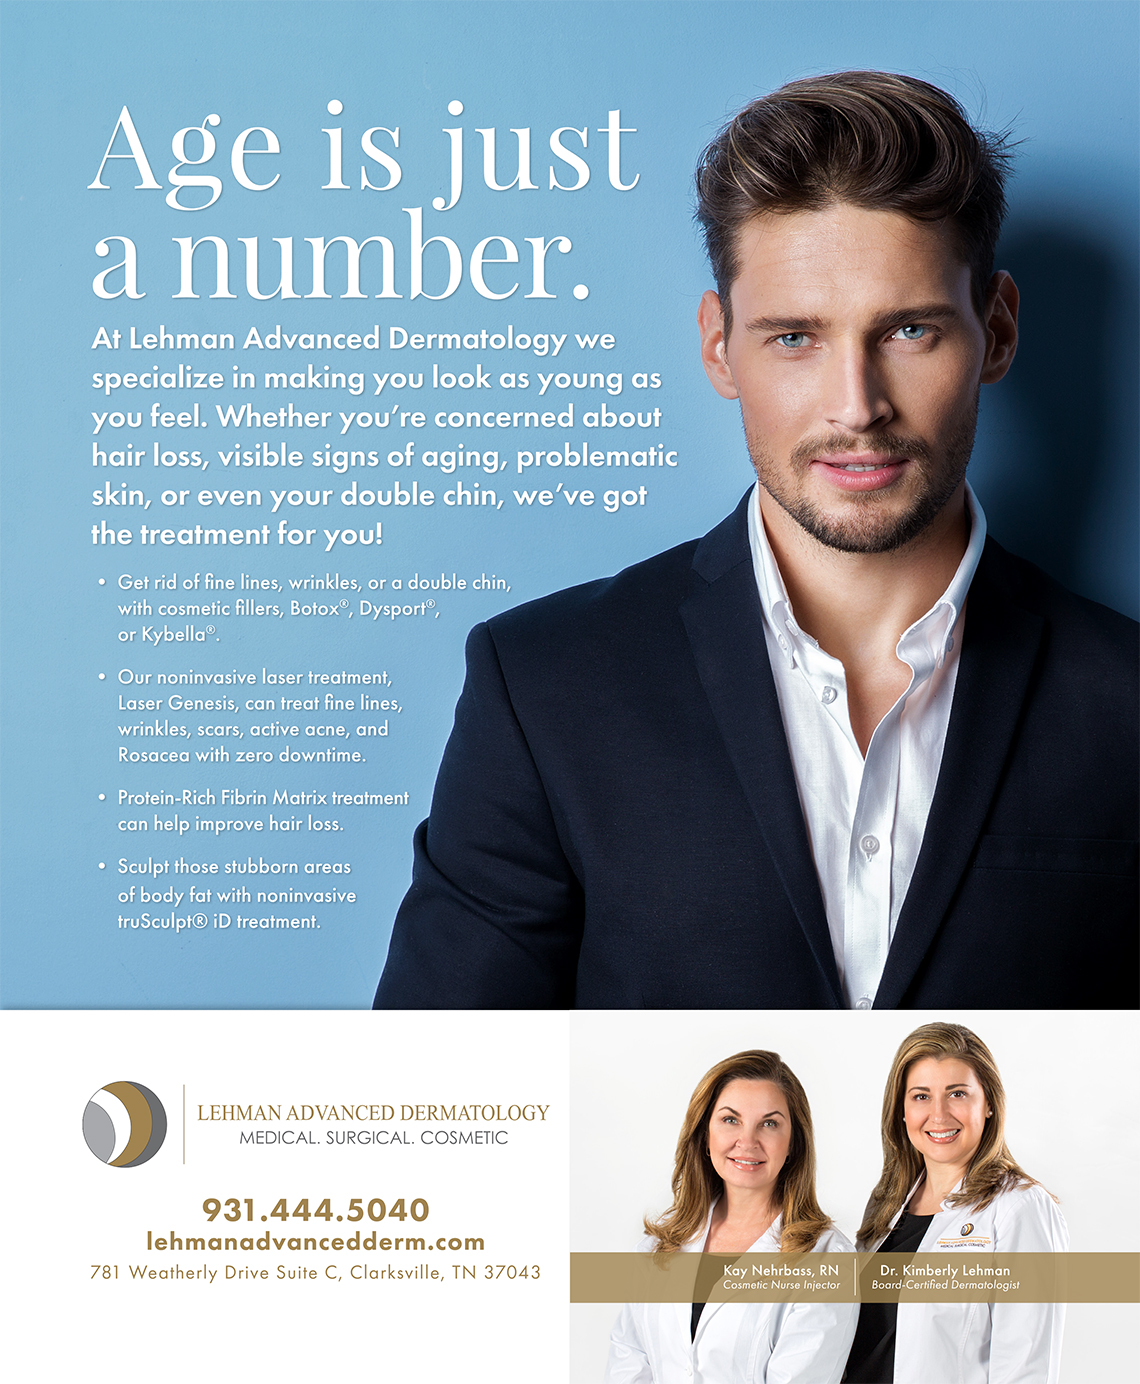 The Ad Group: Dermatology Ad Campaign Design